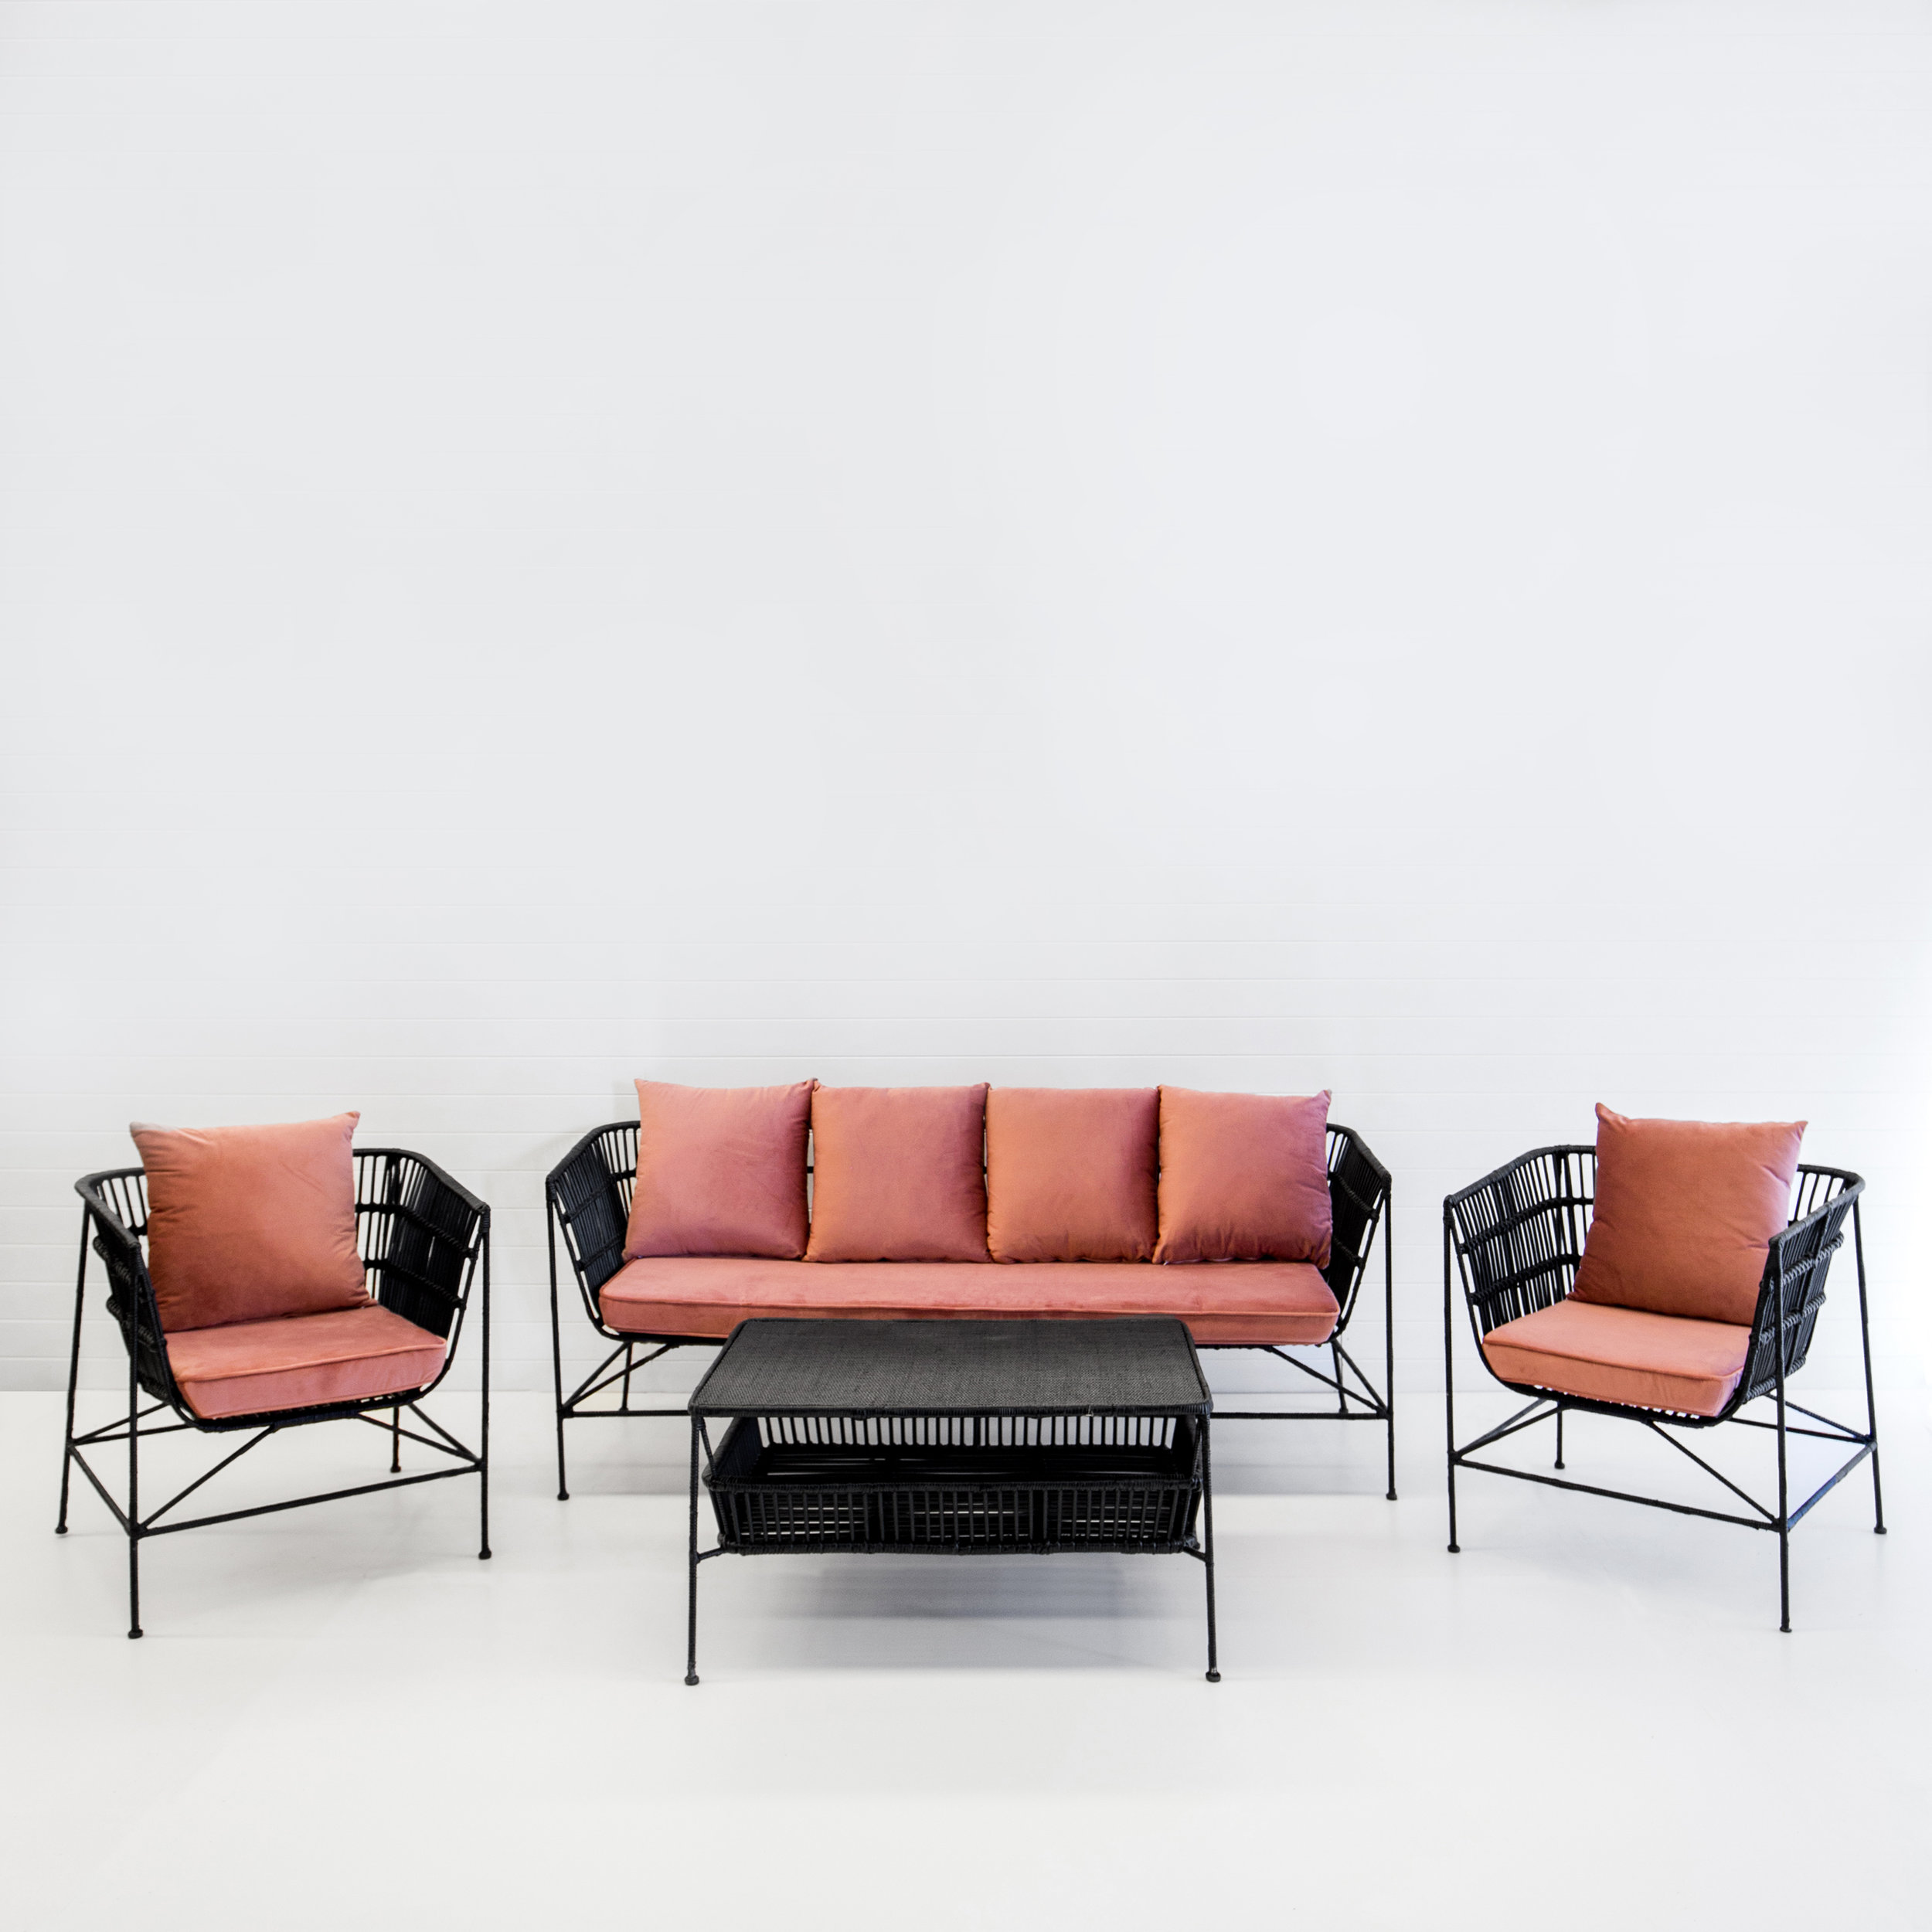 INDIE BLACK SOFA PACKAGE (WITH DUSTY PINK VELVET CUSHIONS)